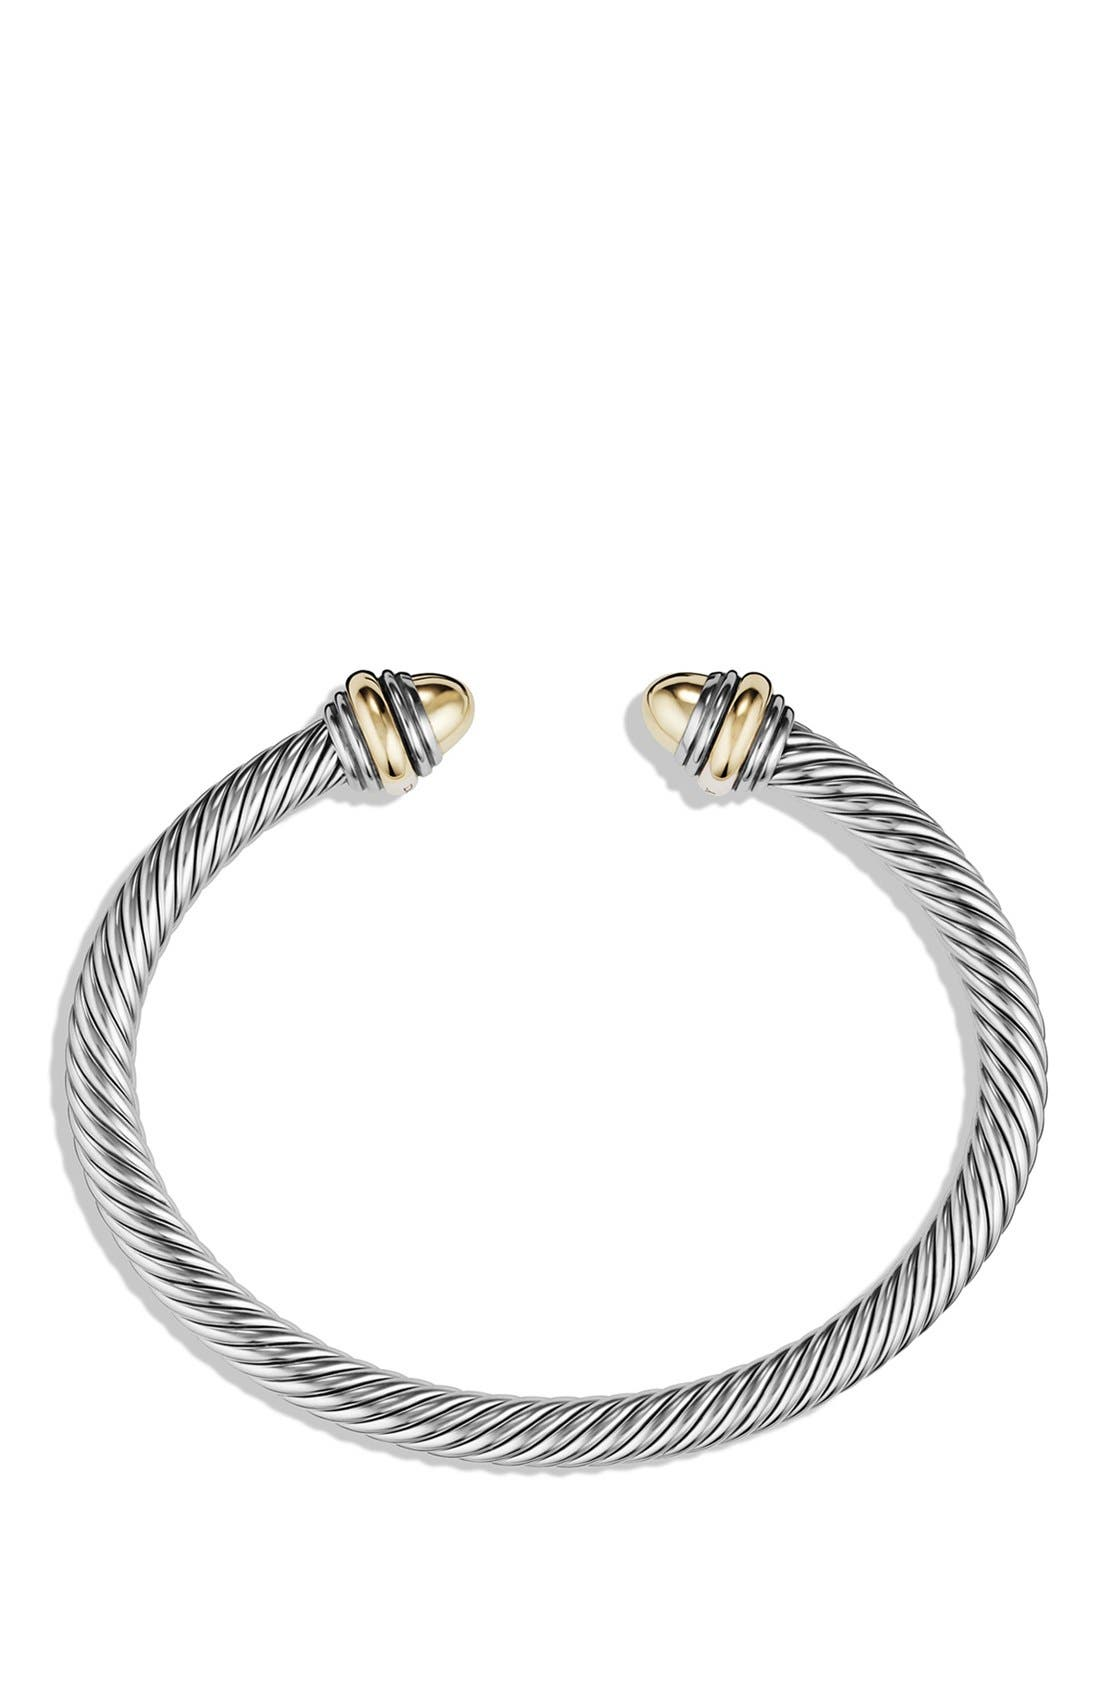 Cable Classics Bracelet with Gold, 5mm,                             Alternate thumbnail 2, color,                             GOLD DOME